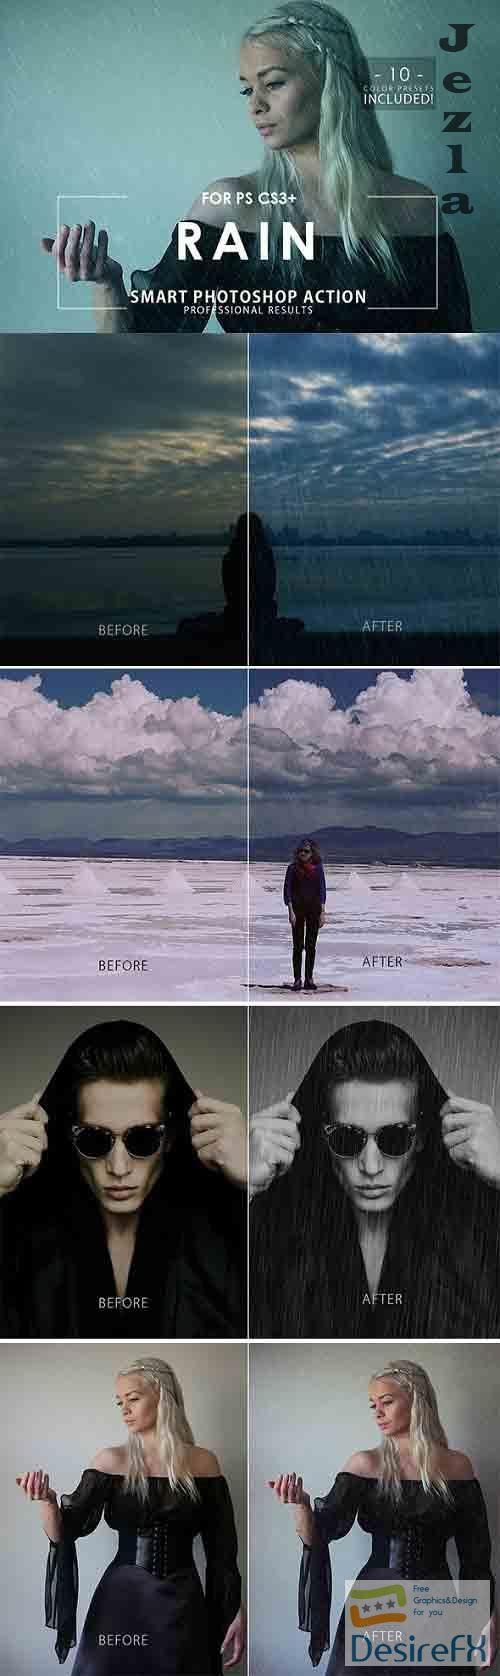 GraphicRiver - Rain Photoshop Action 28806032